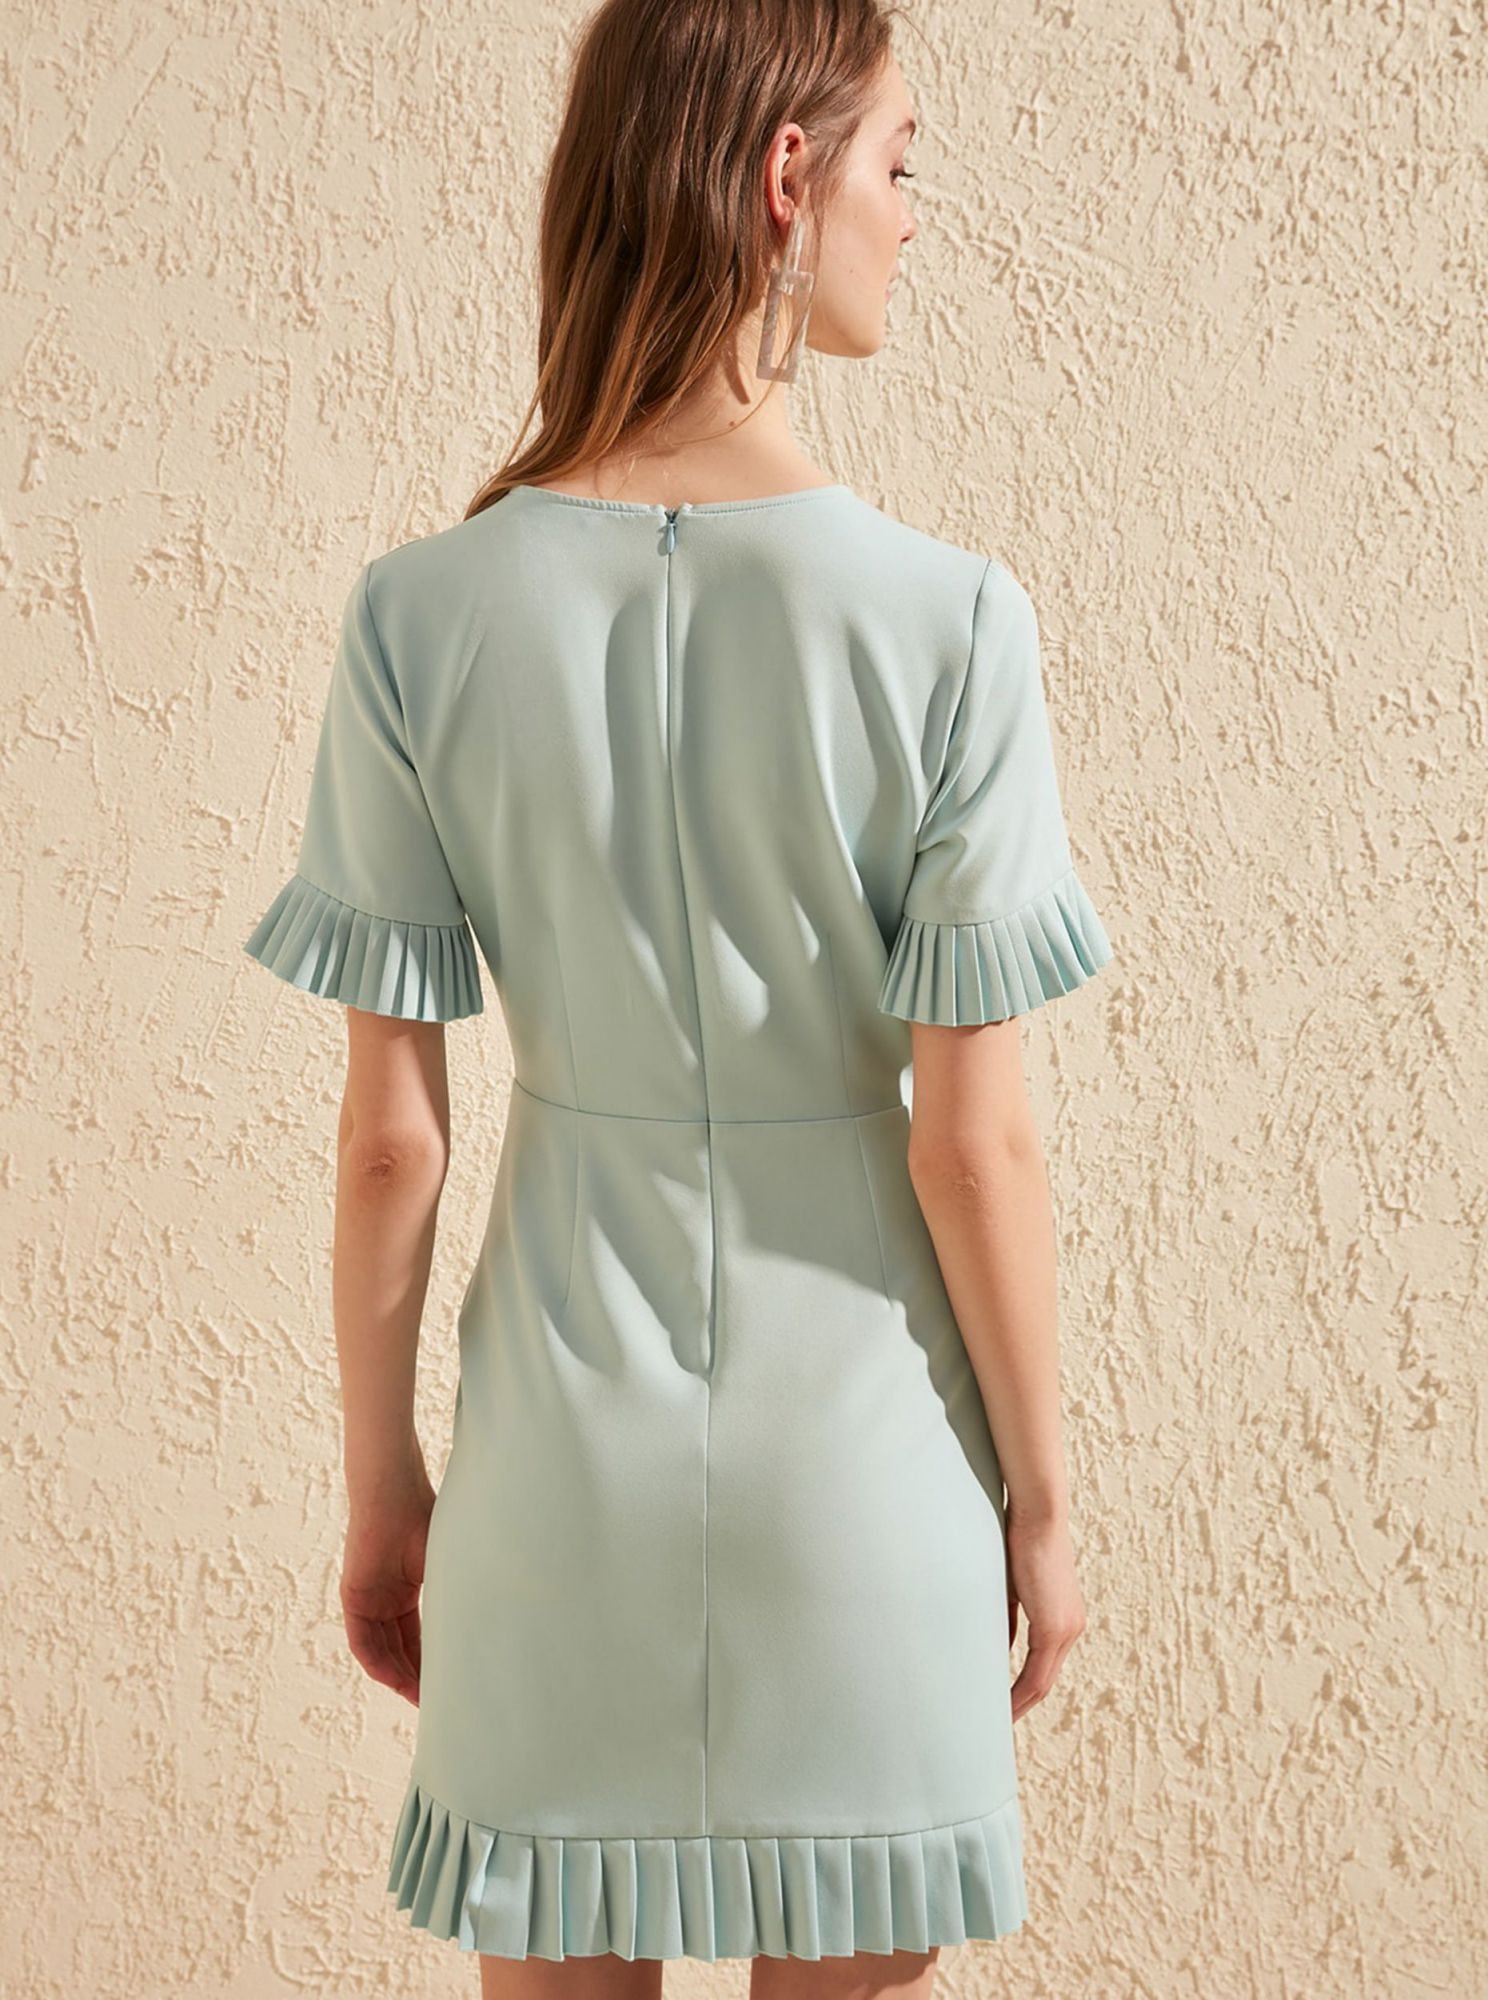 Trendyol green summer dress with ruffled sleeves